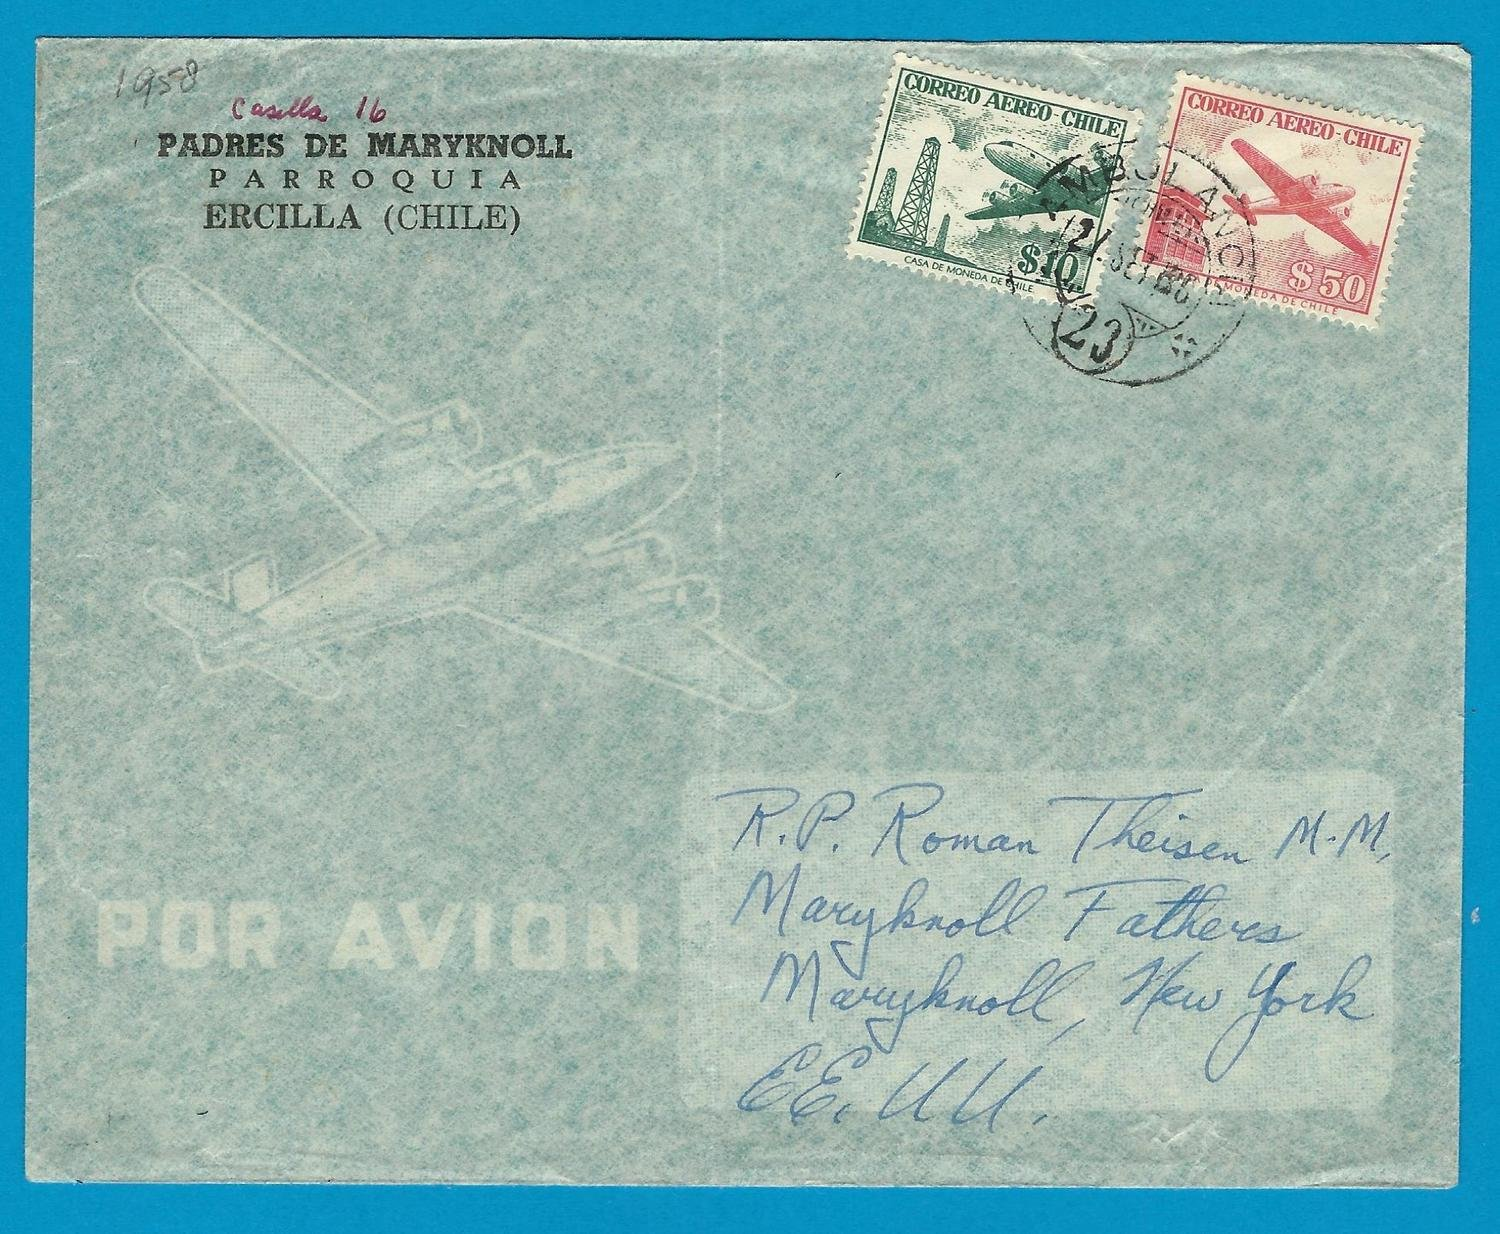 CHILE airmail cover 1958 Ercilla cancel Ambulancia 23 to USA